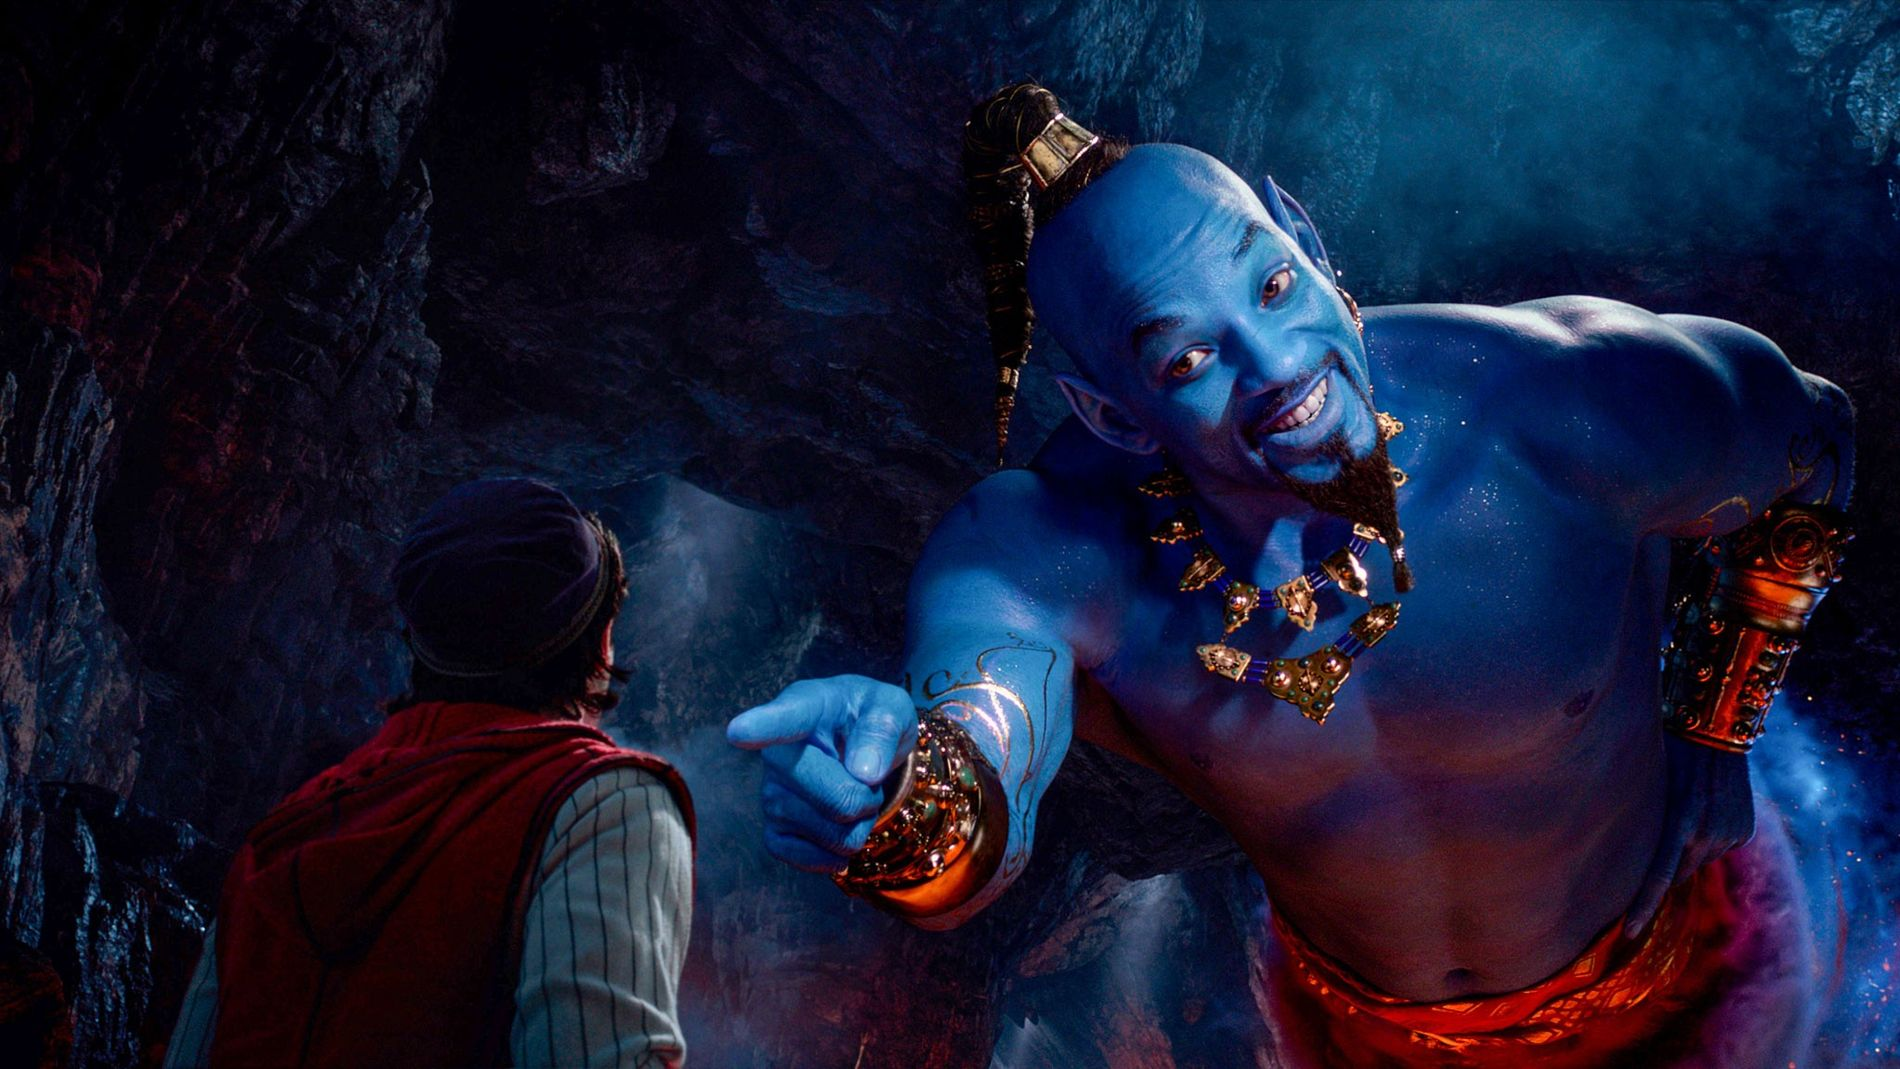 A still from the live-action version of Aladdin, in which actor Will Smith plays the genie ...